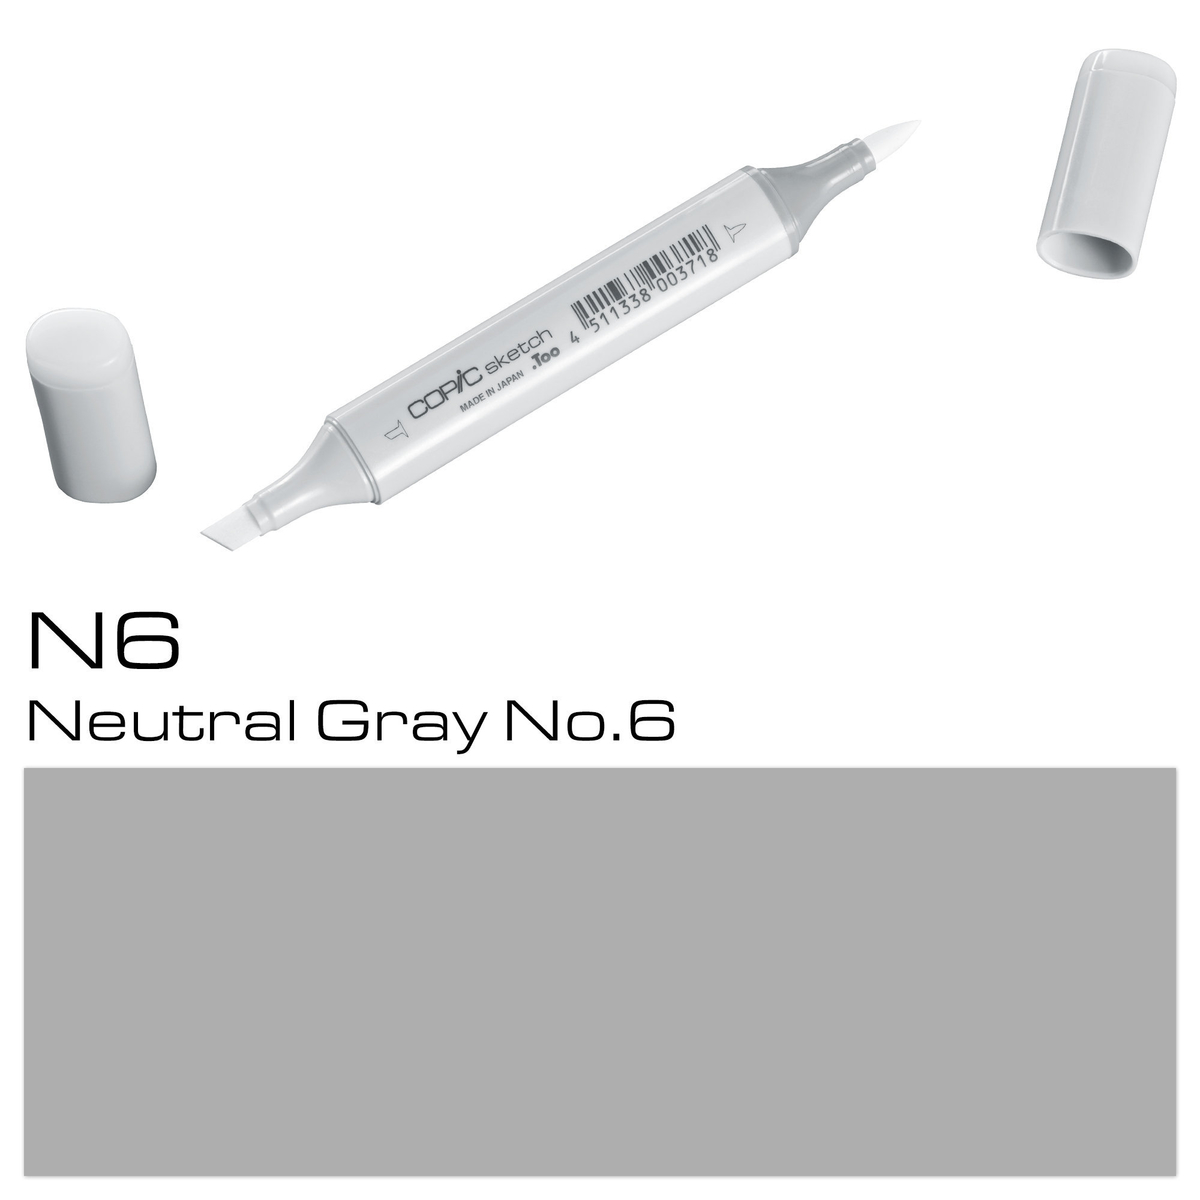 Copic Sketch N 6 neutral gray